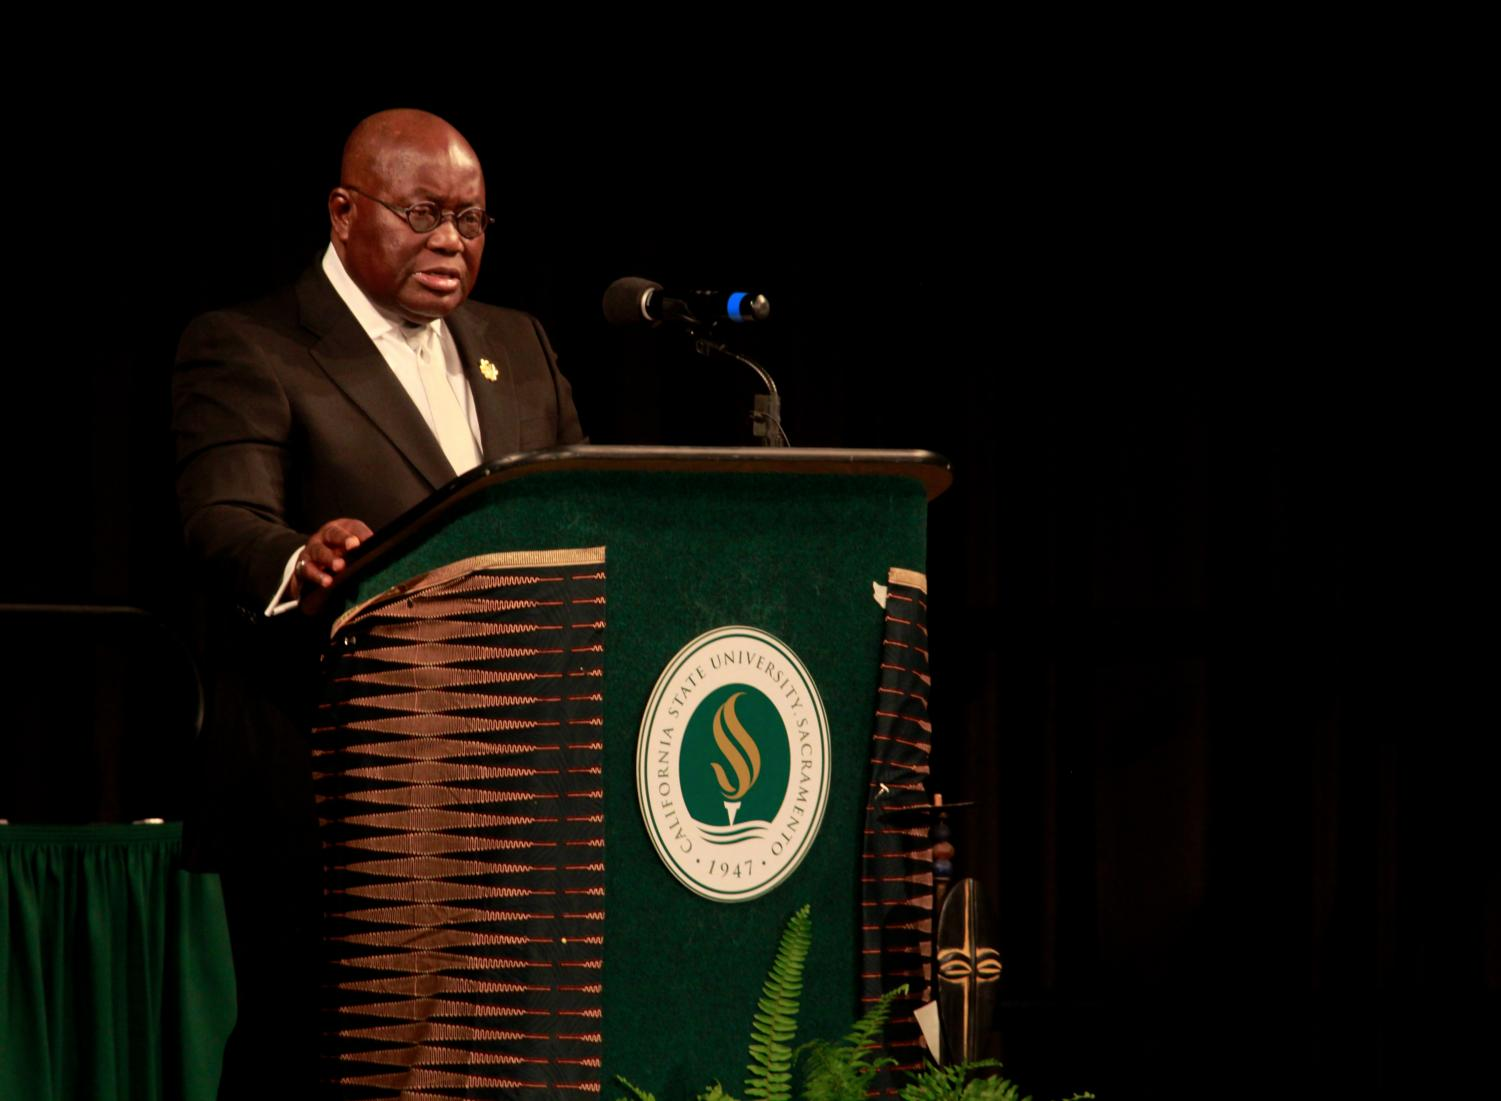 Ghanaian president Nana Akufo-Addo delivers his keynote speech following his acceptance of the African Peace Leadership Award in the University Union Ballroom on Saturday, April 28, 2018.